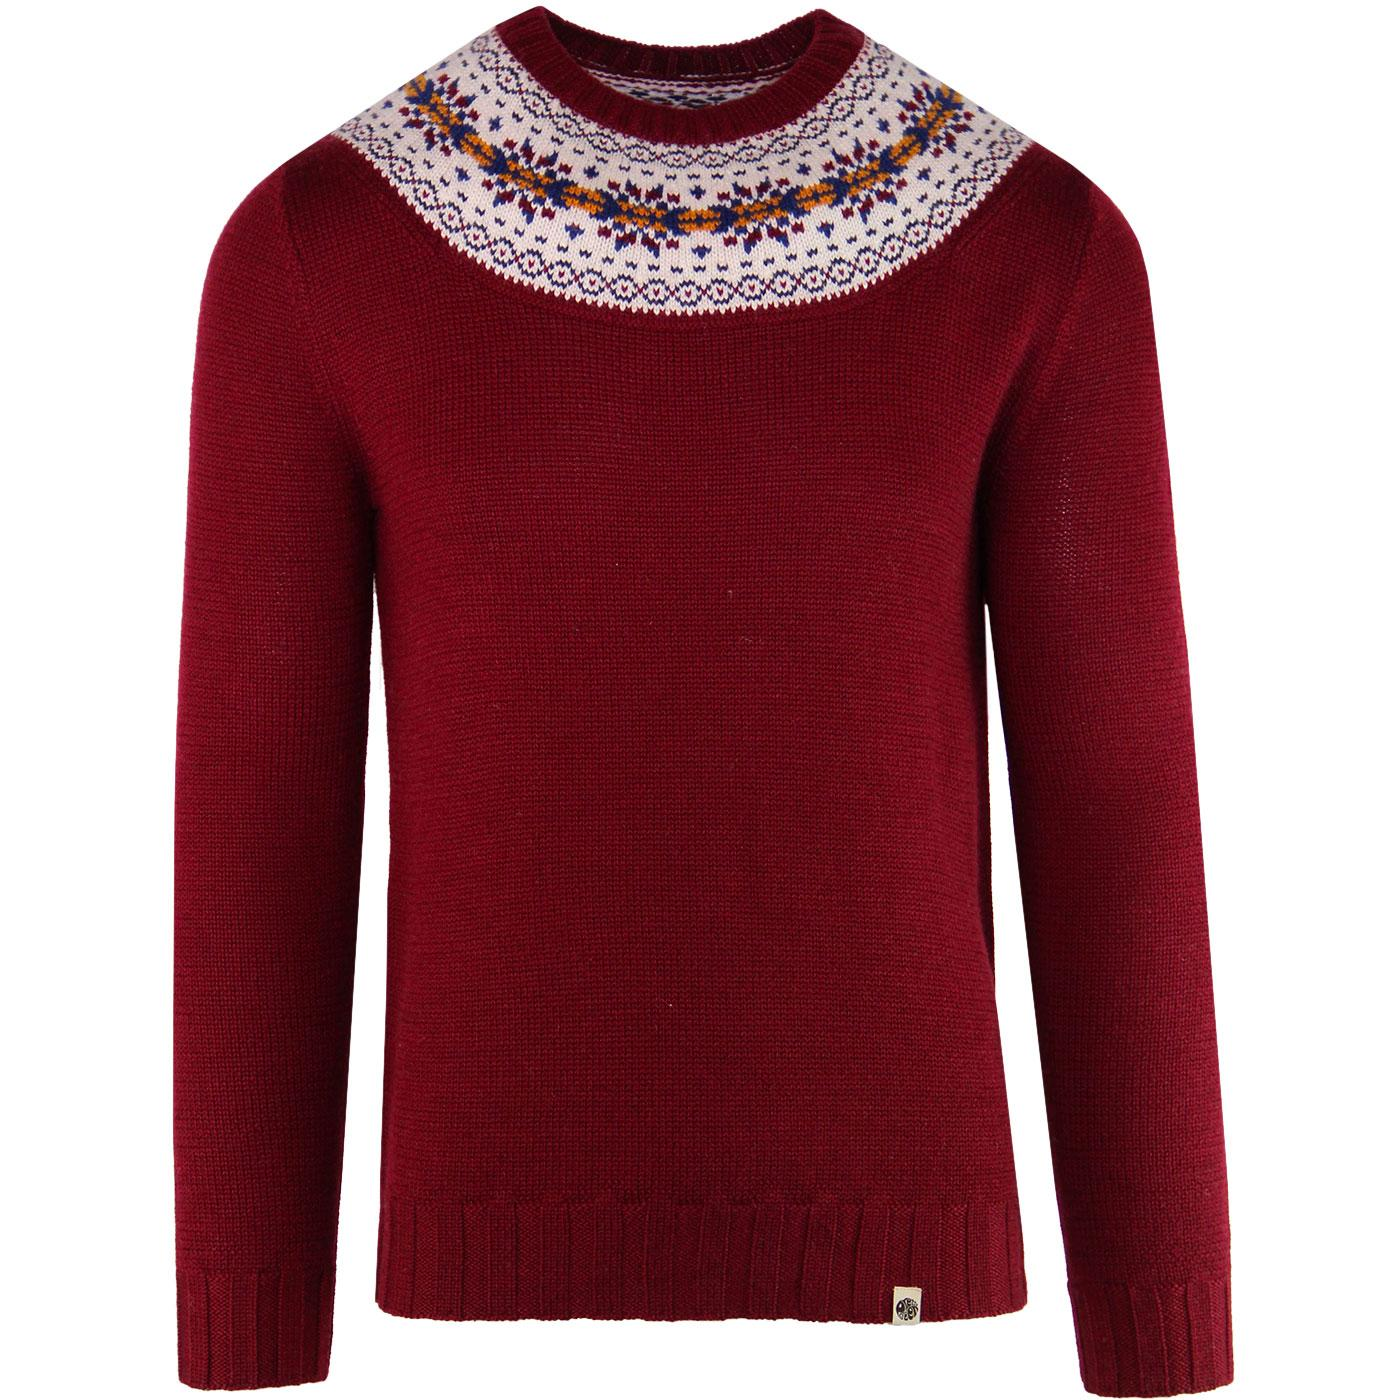 9629e8c7ac575 PRETTY GREEN Retro 70 s Knitted Fair Isle Jumper in Red